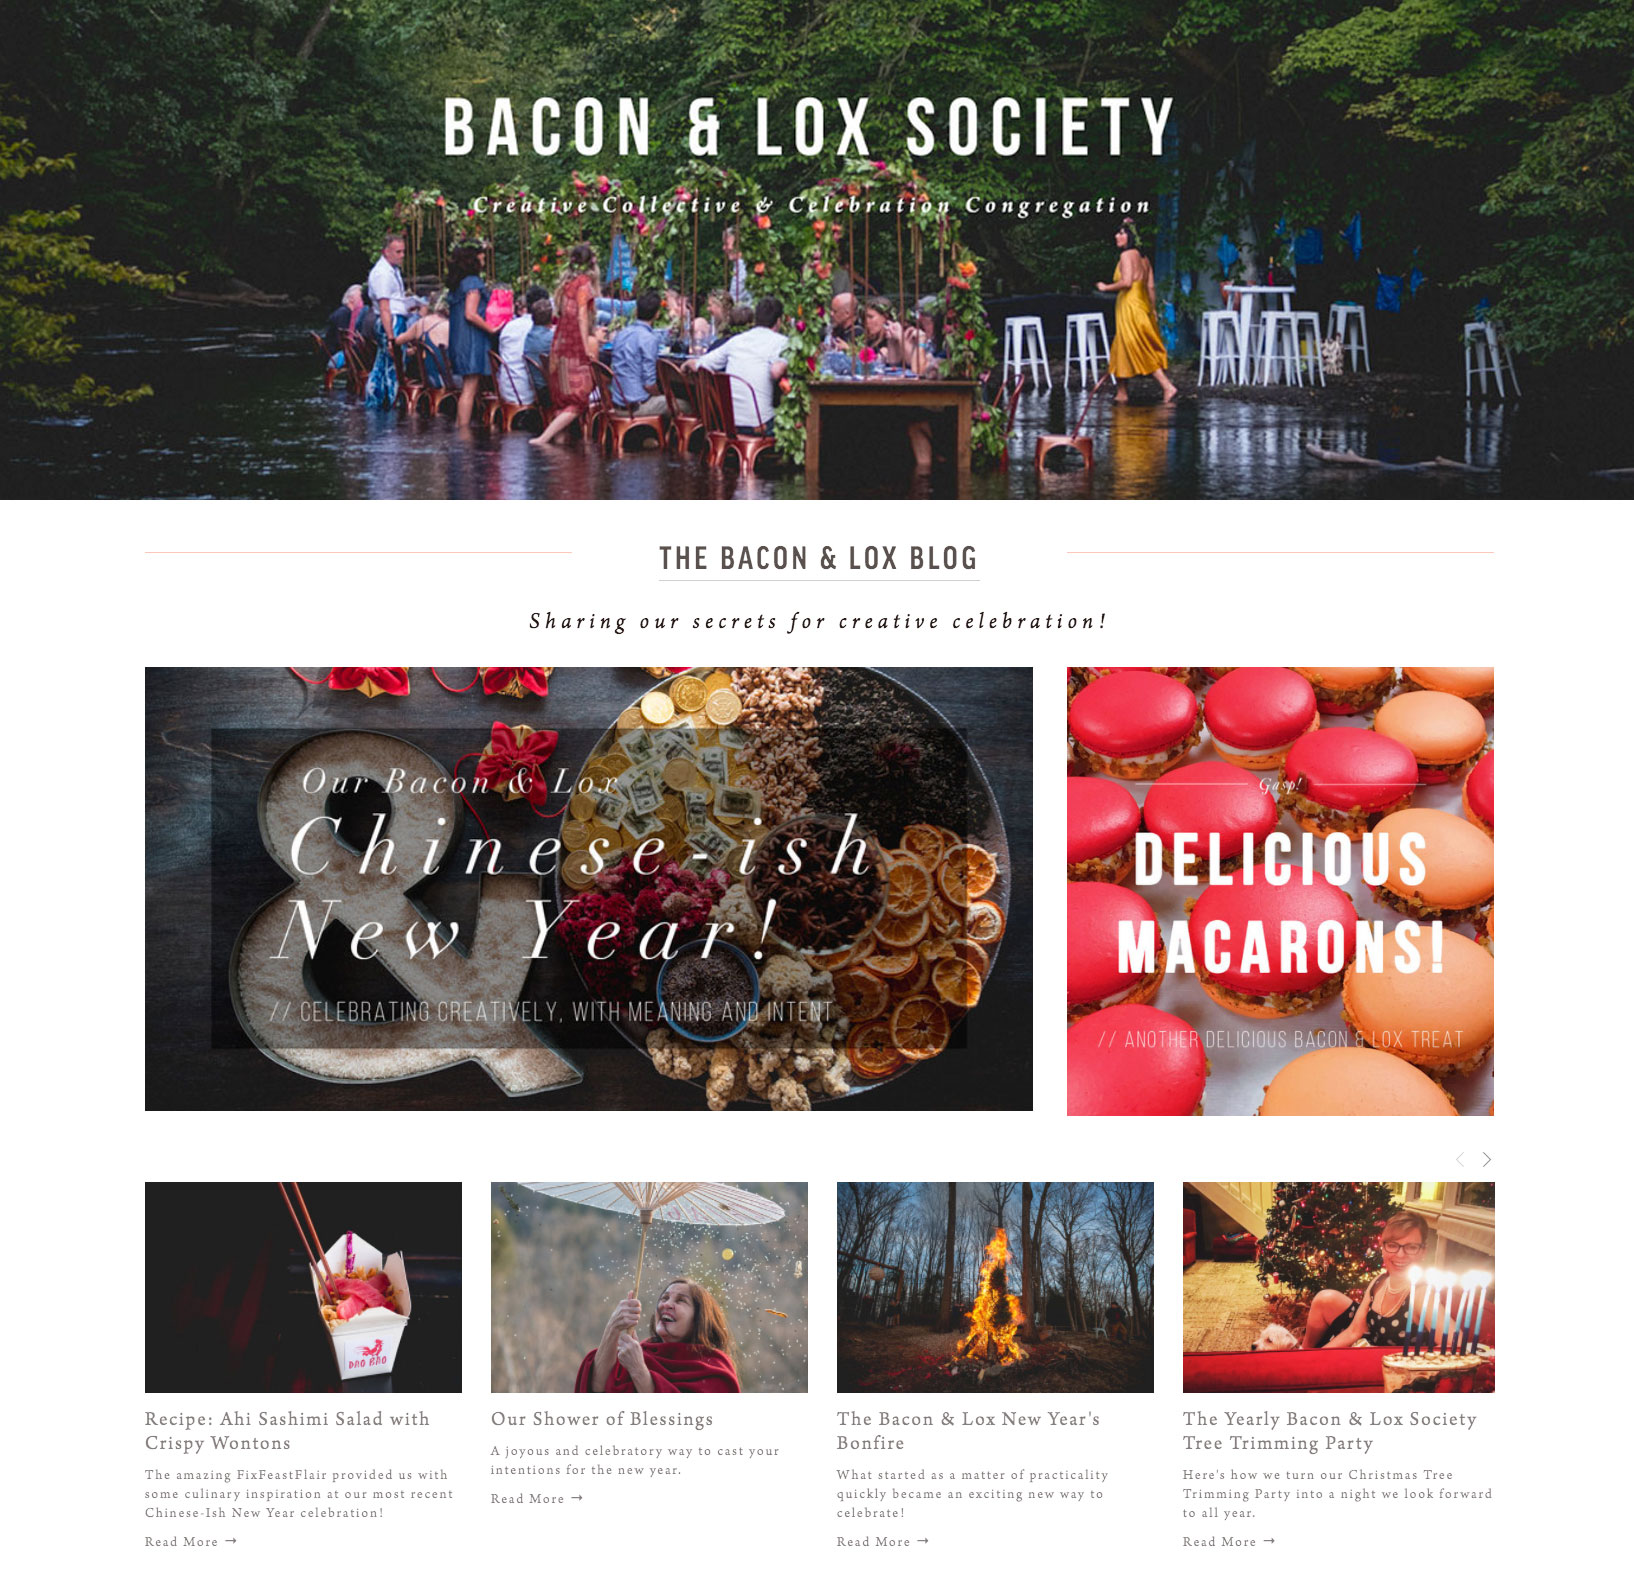 Bacon & Lox Society